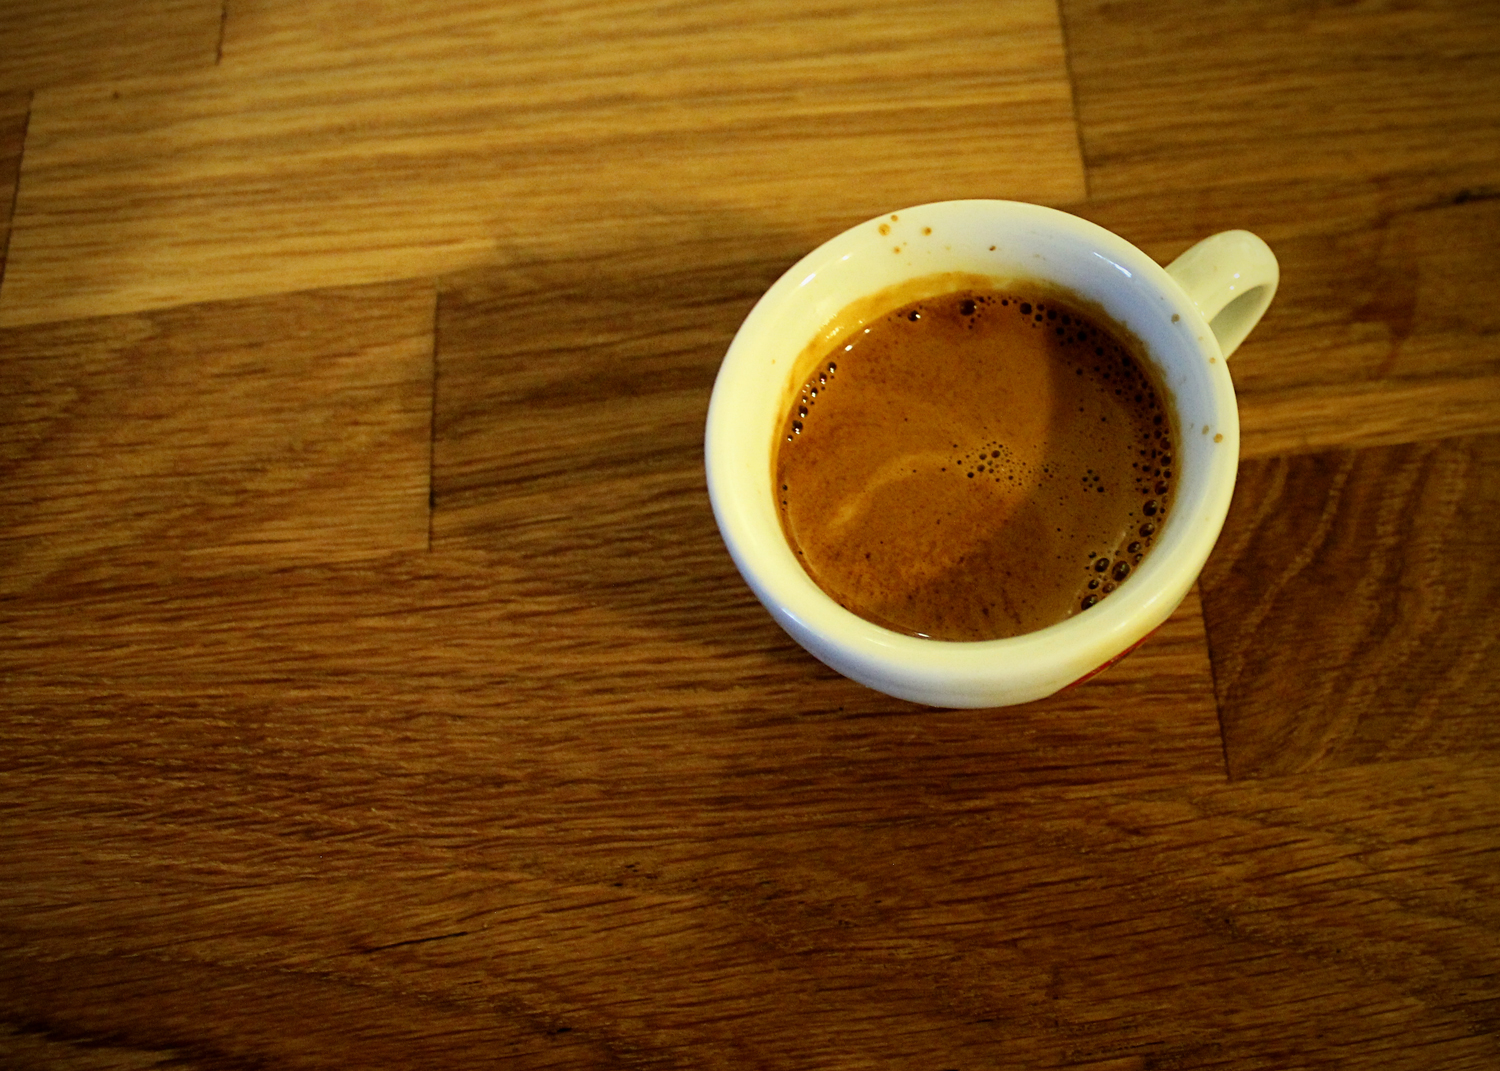 A shot of espresso in a small white mug pulled from a La Pavoni Espresso Machine